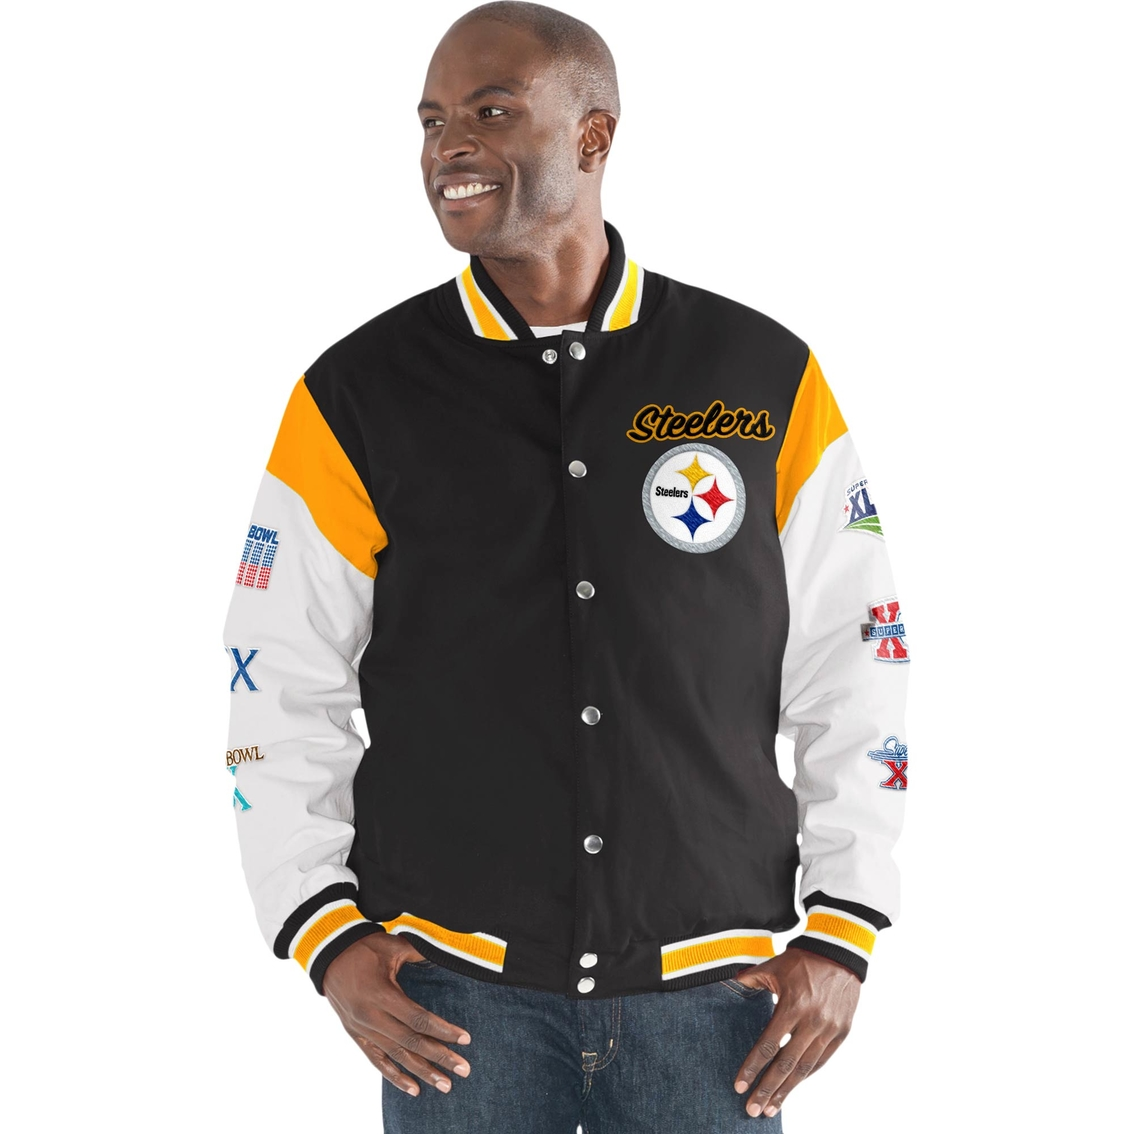 6986e8a57 G-III Sports NFL Pittsburgh Steelers Team Elite Commemorative Varsity Jacket